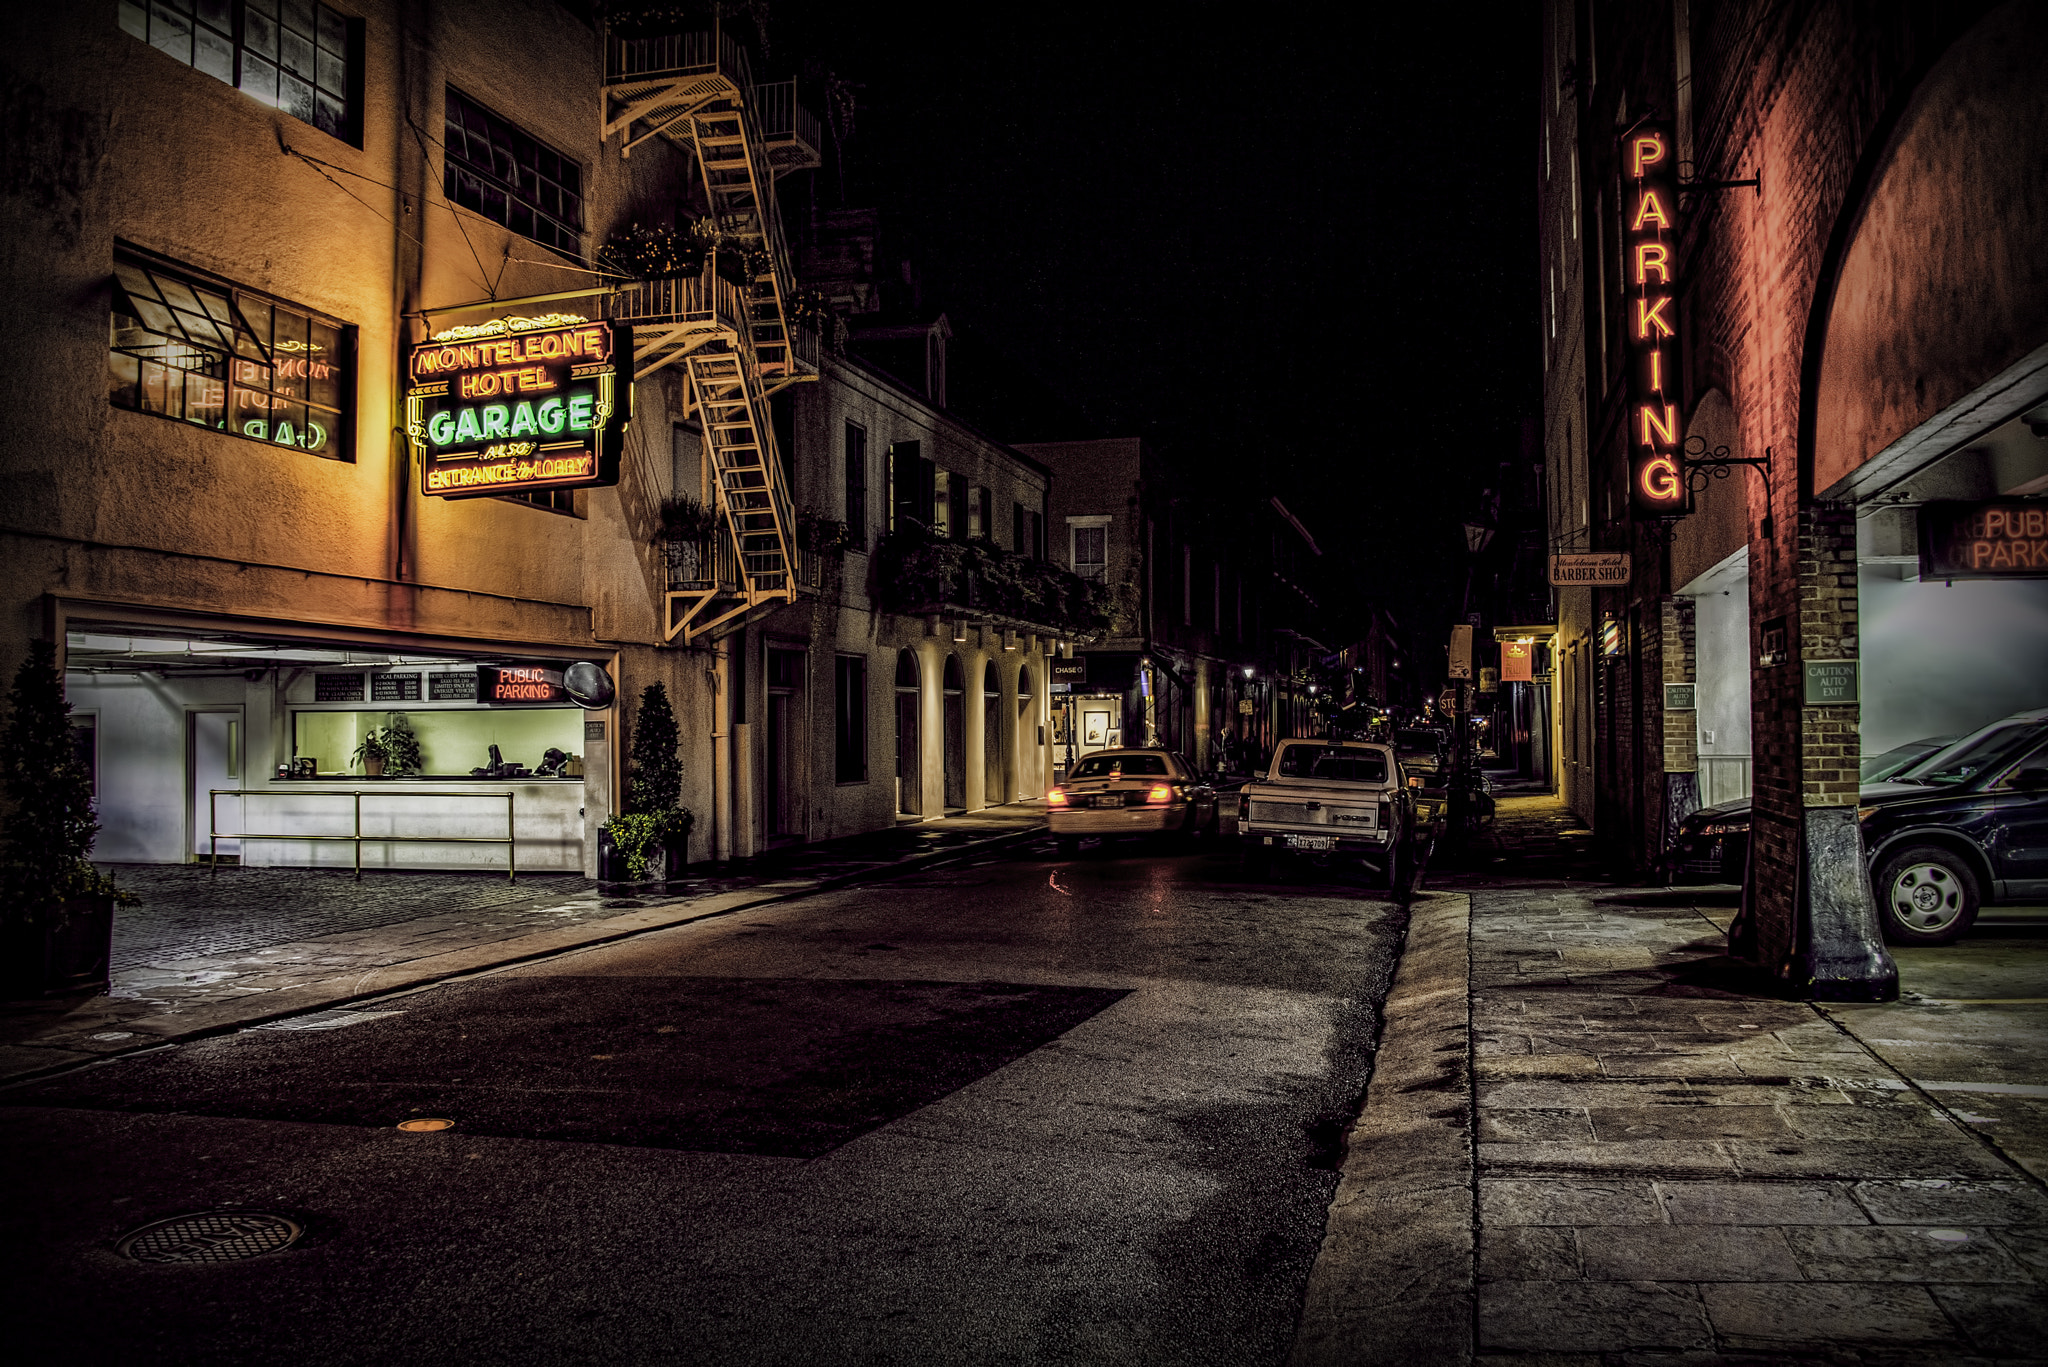 Photograph City at Night by Todd Leckie on 500px